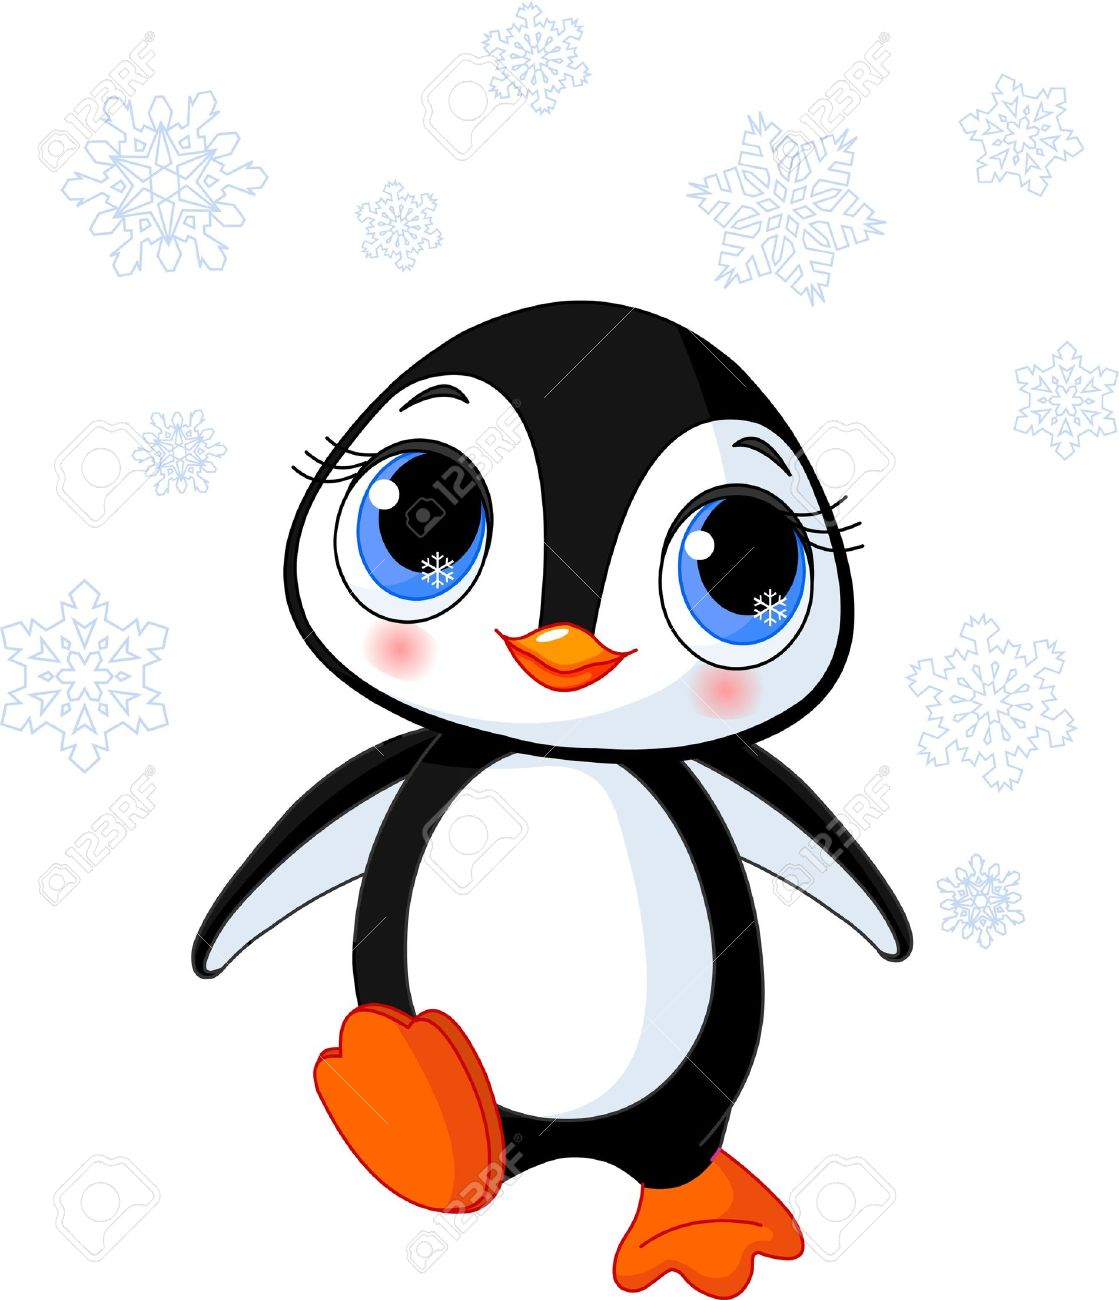 Adorable penguin clipart picture free Cute Cartoon Penguin Pictures | Free download best Cute Cartoon ... picture free